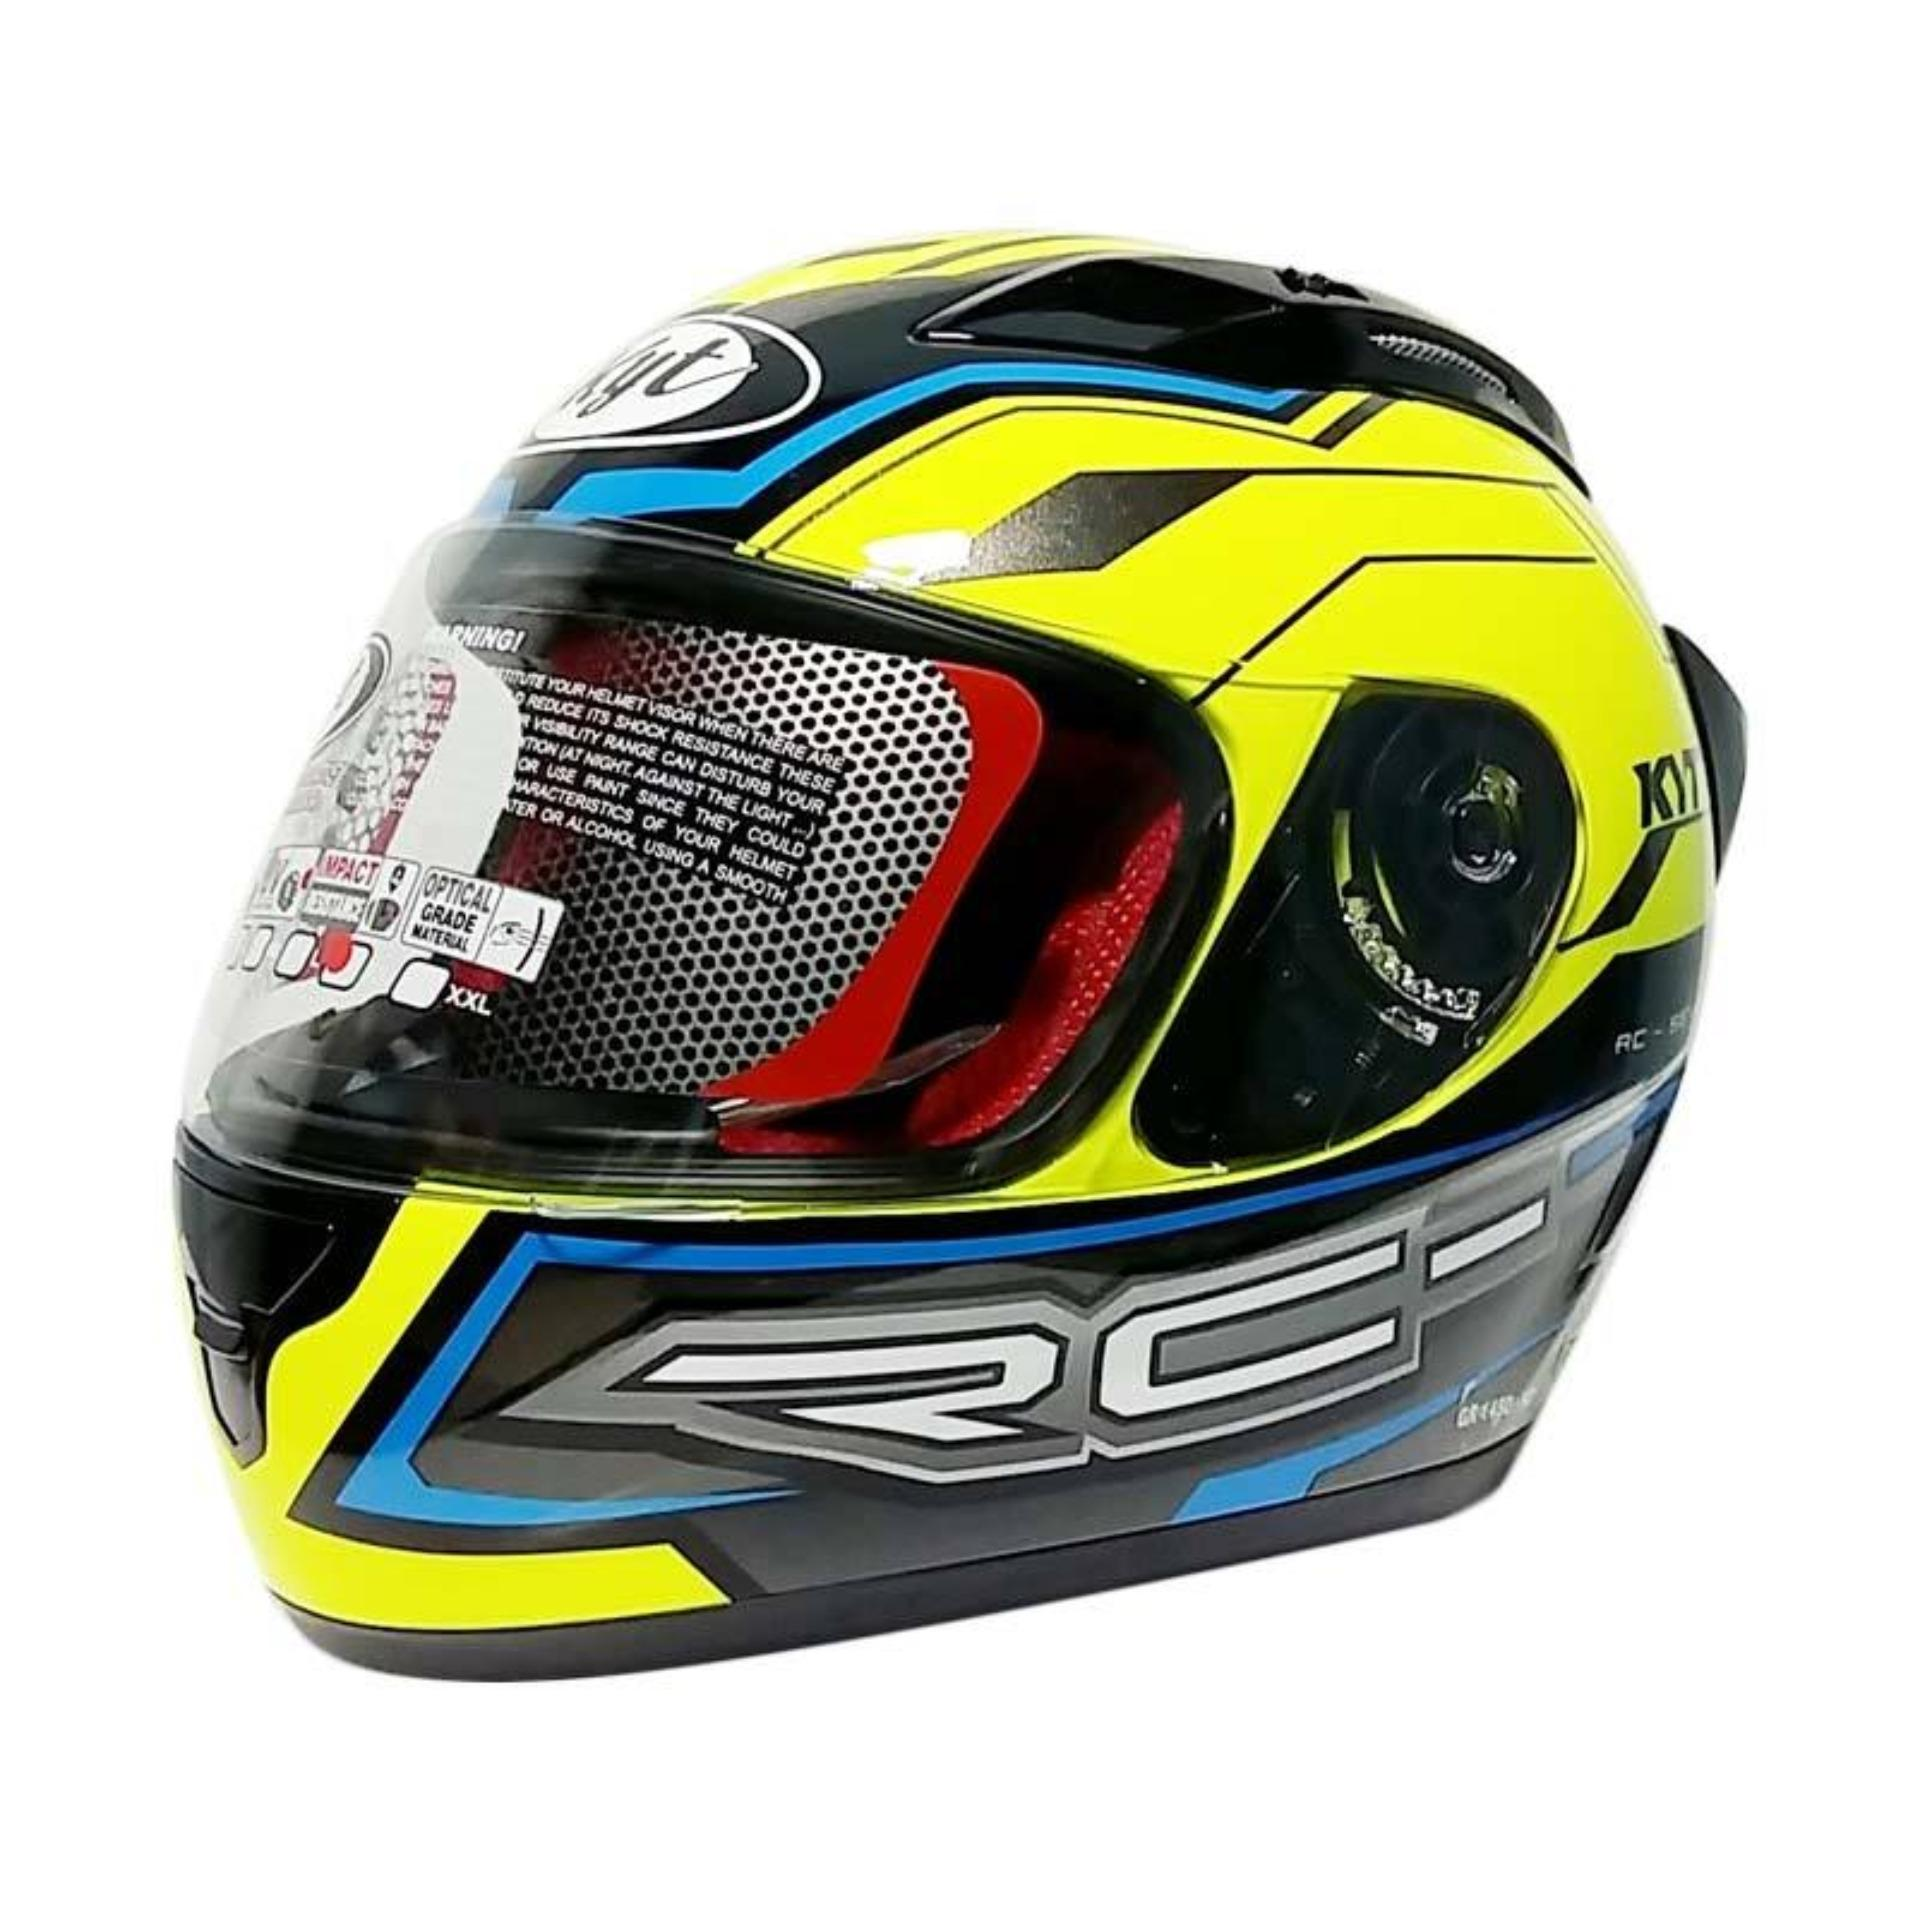 Jual Kyt Rc Seven 14 Helm Full Face Yellow Blue Black Murah Indonesia